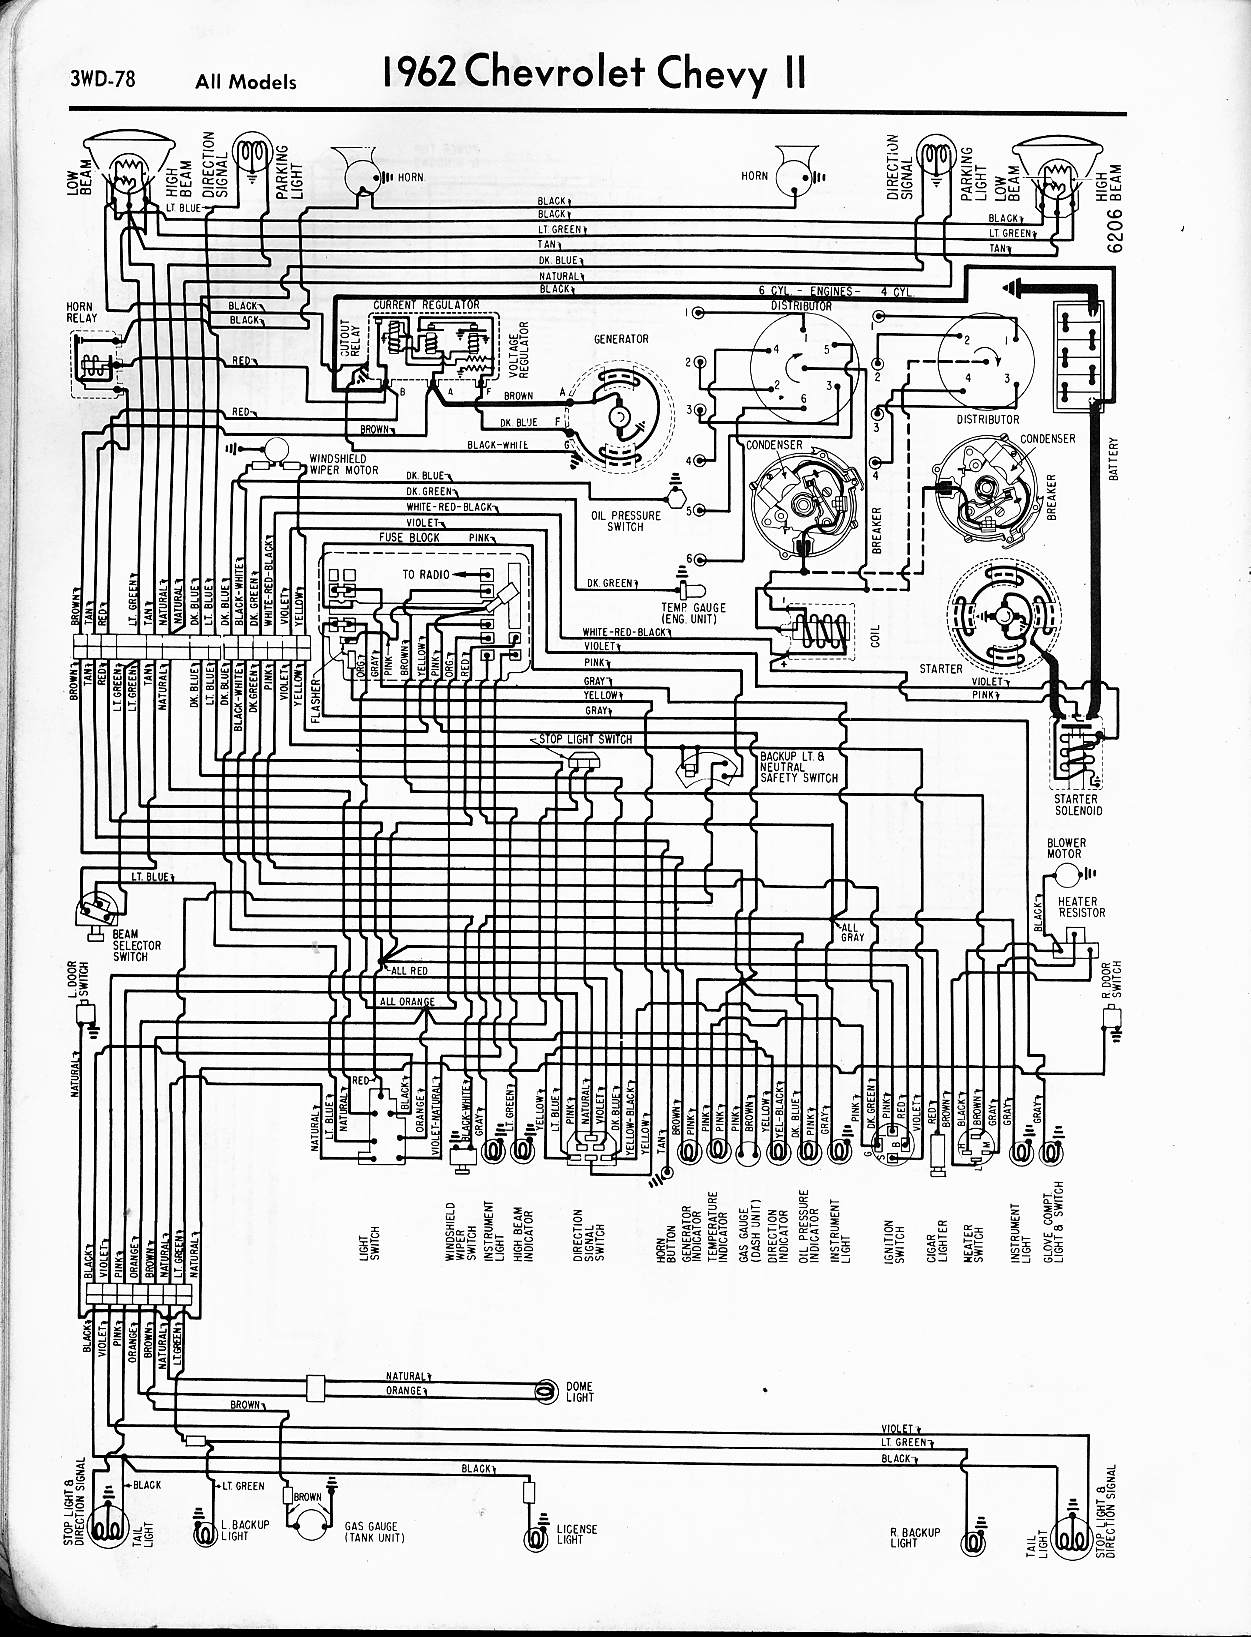 Chevy 2 Wire Alternator Wiring Diagram from www.oldcarmanualproject.com